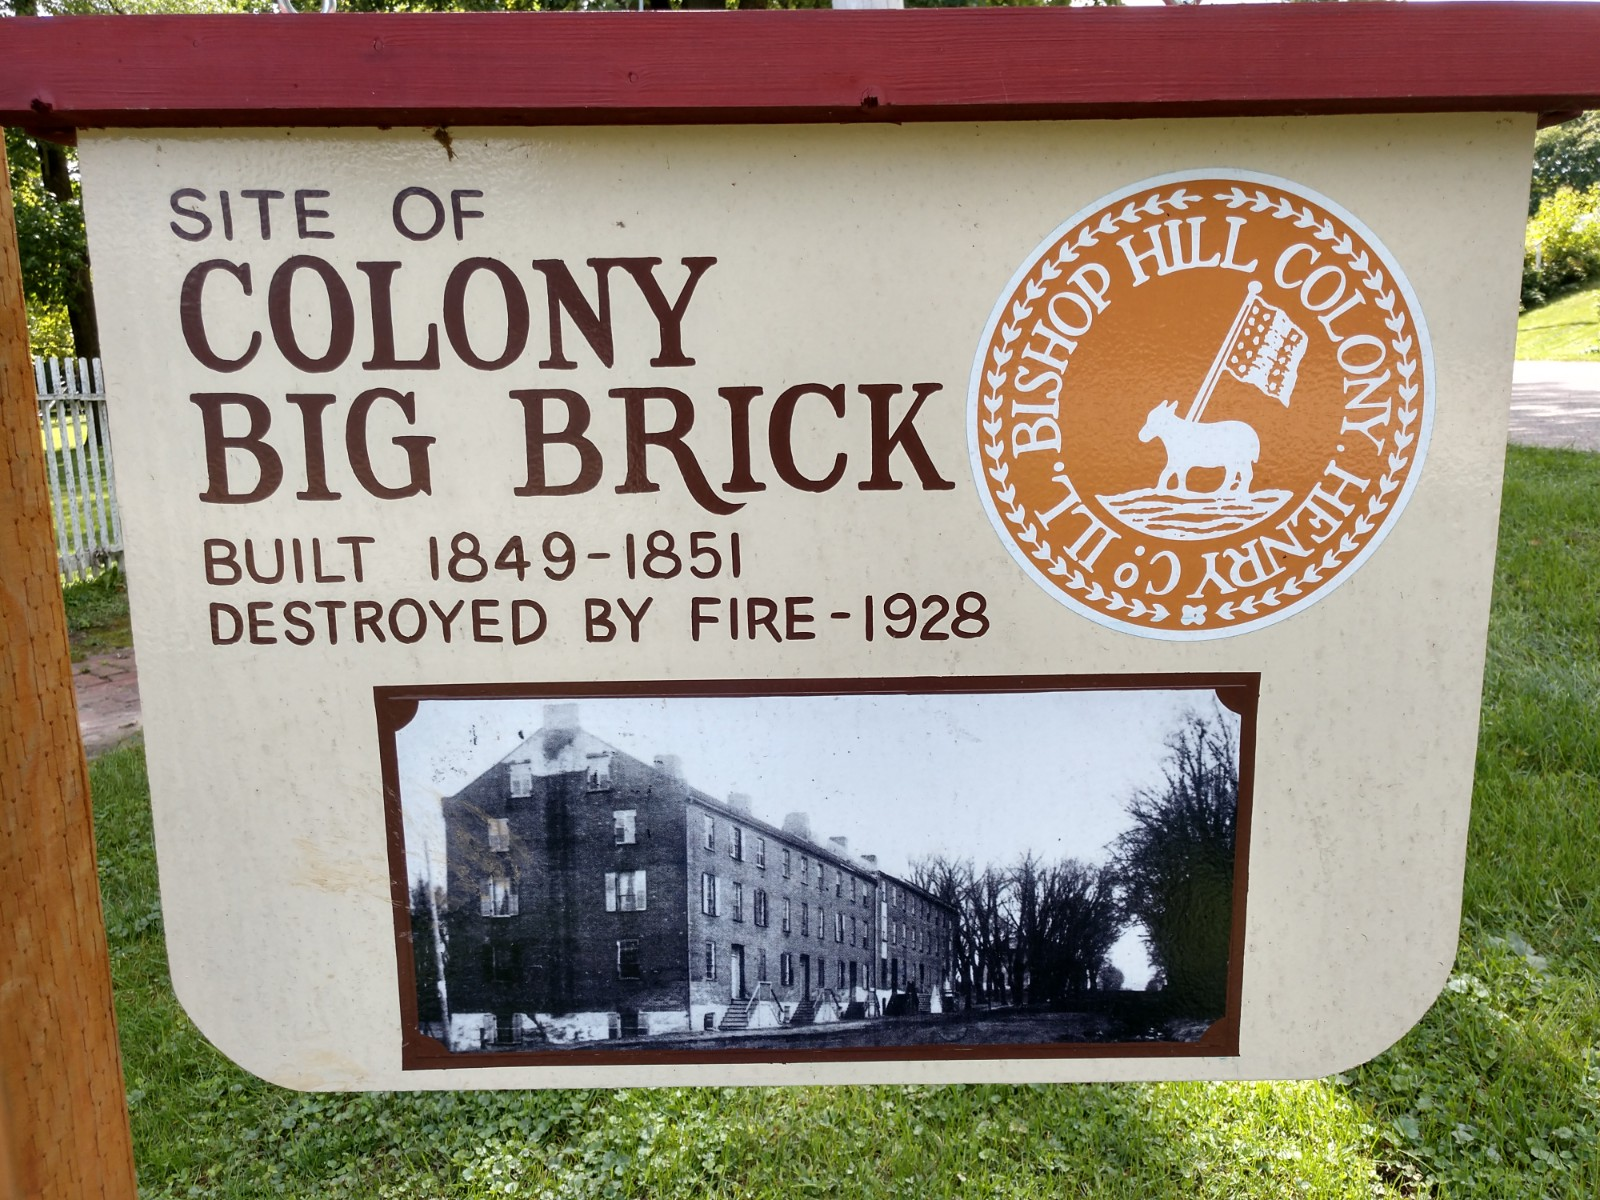 Site of Big Brick - Begun in 1848 and Finished in 1851 it Collapsed in 1928